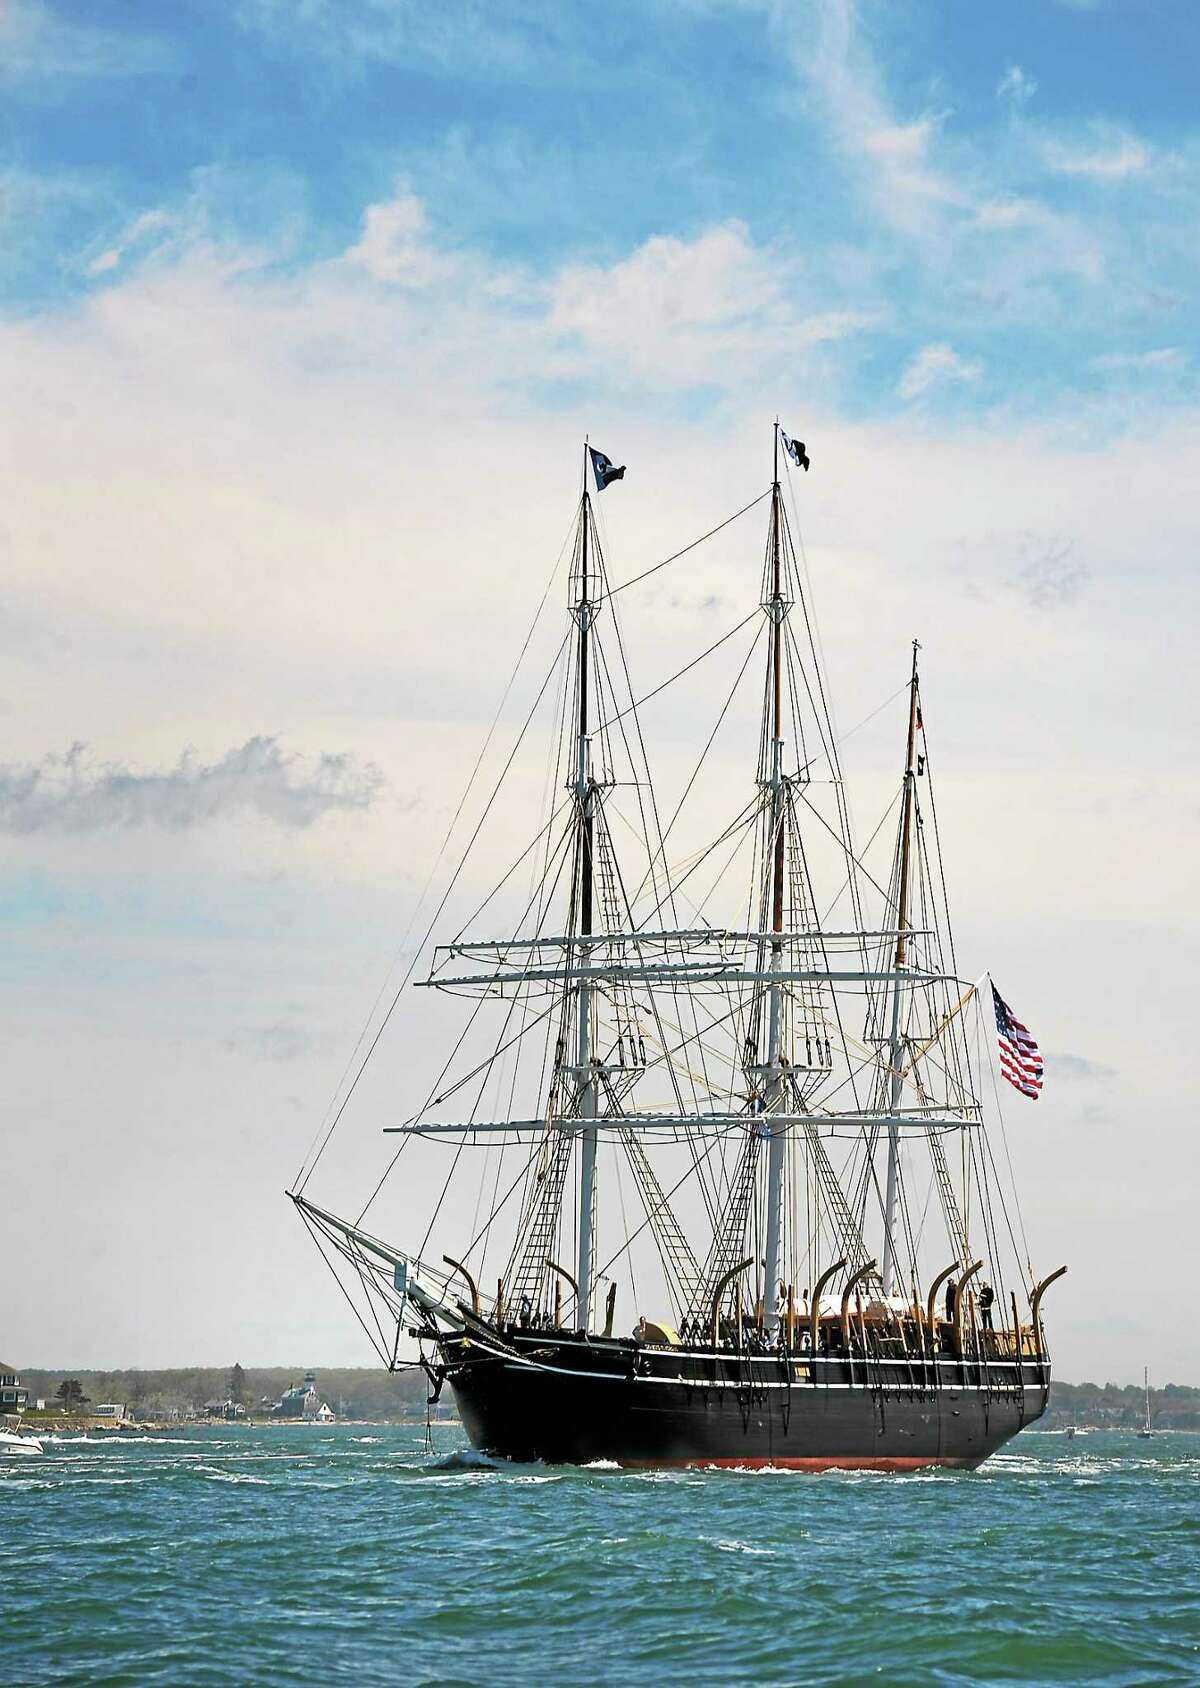 The historic whaleship Charles W. Morgan cruises the open water of Fishers Island Sound off Groton, Conn., as the ship makes its first voyage since 1941 en-route from the Mystic Seaport to New London, Conn. on May 17, 2014.